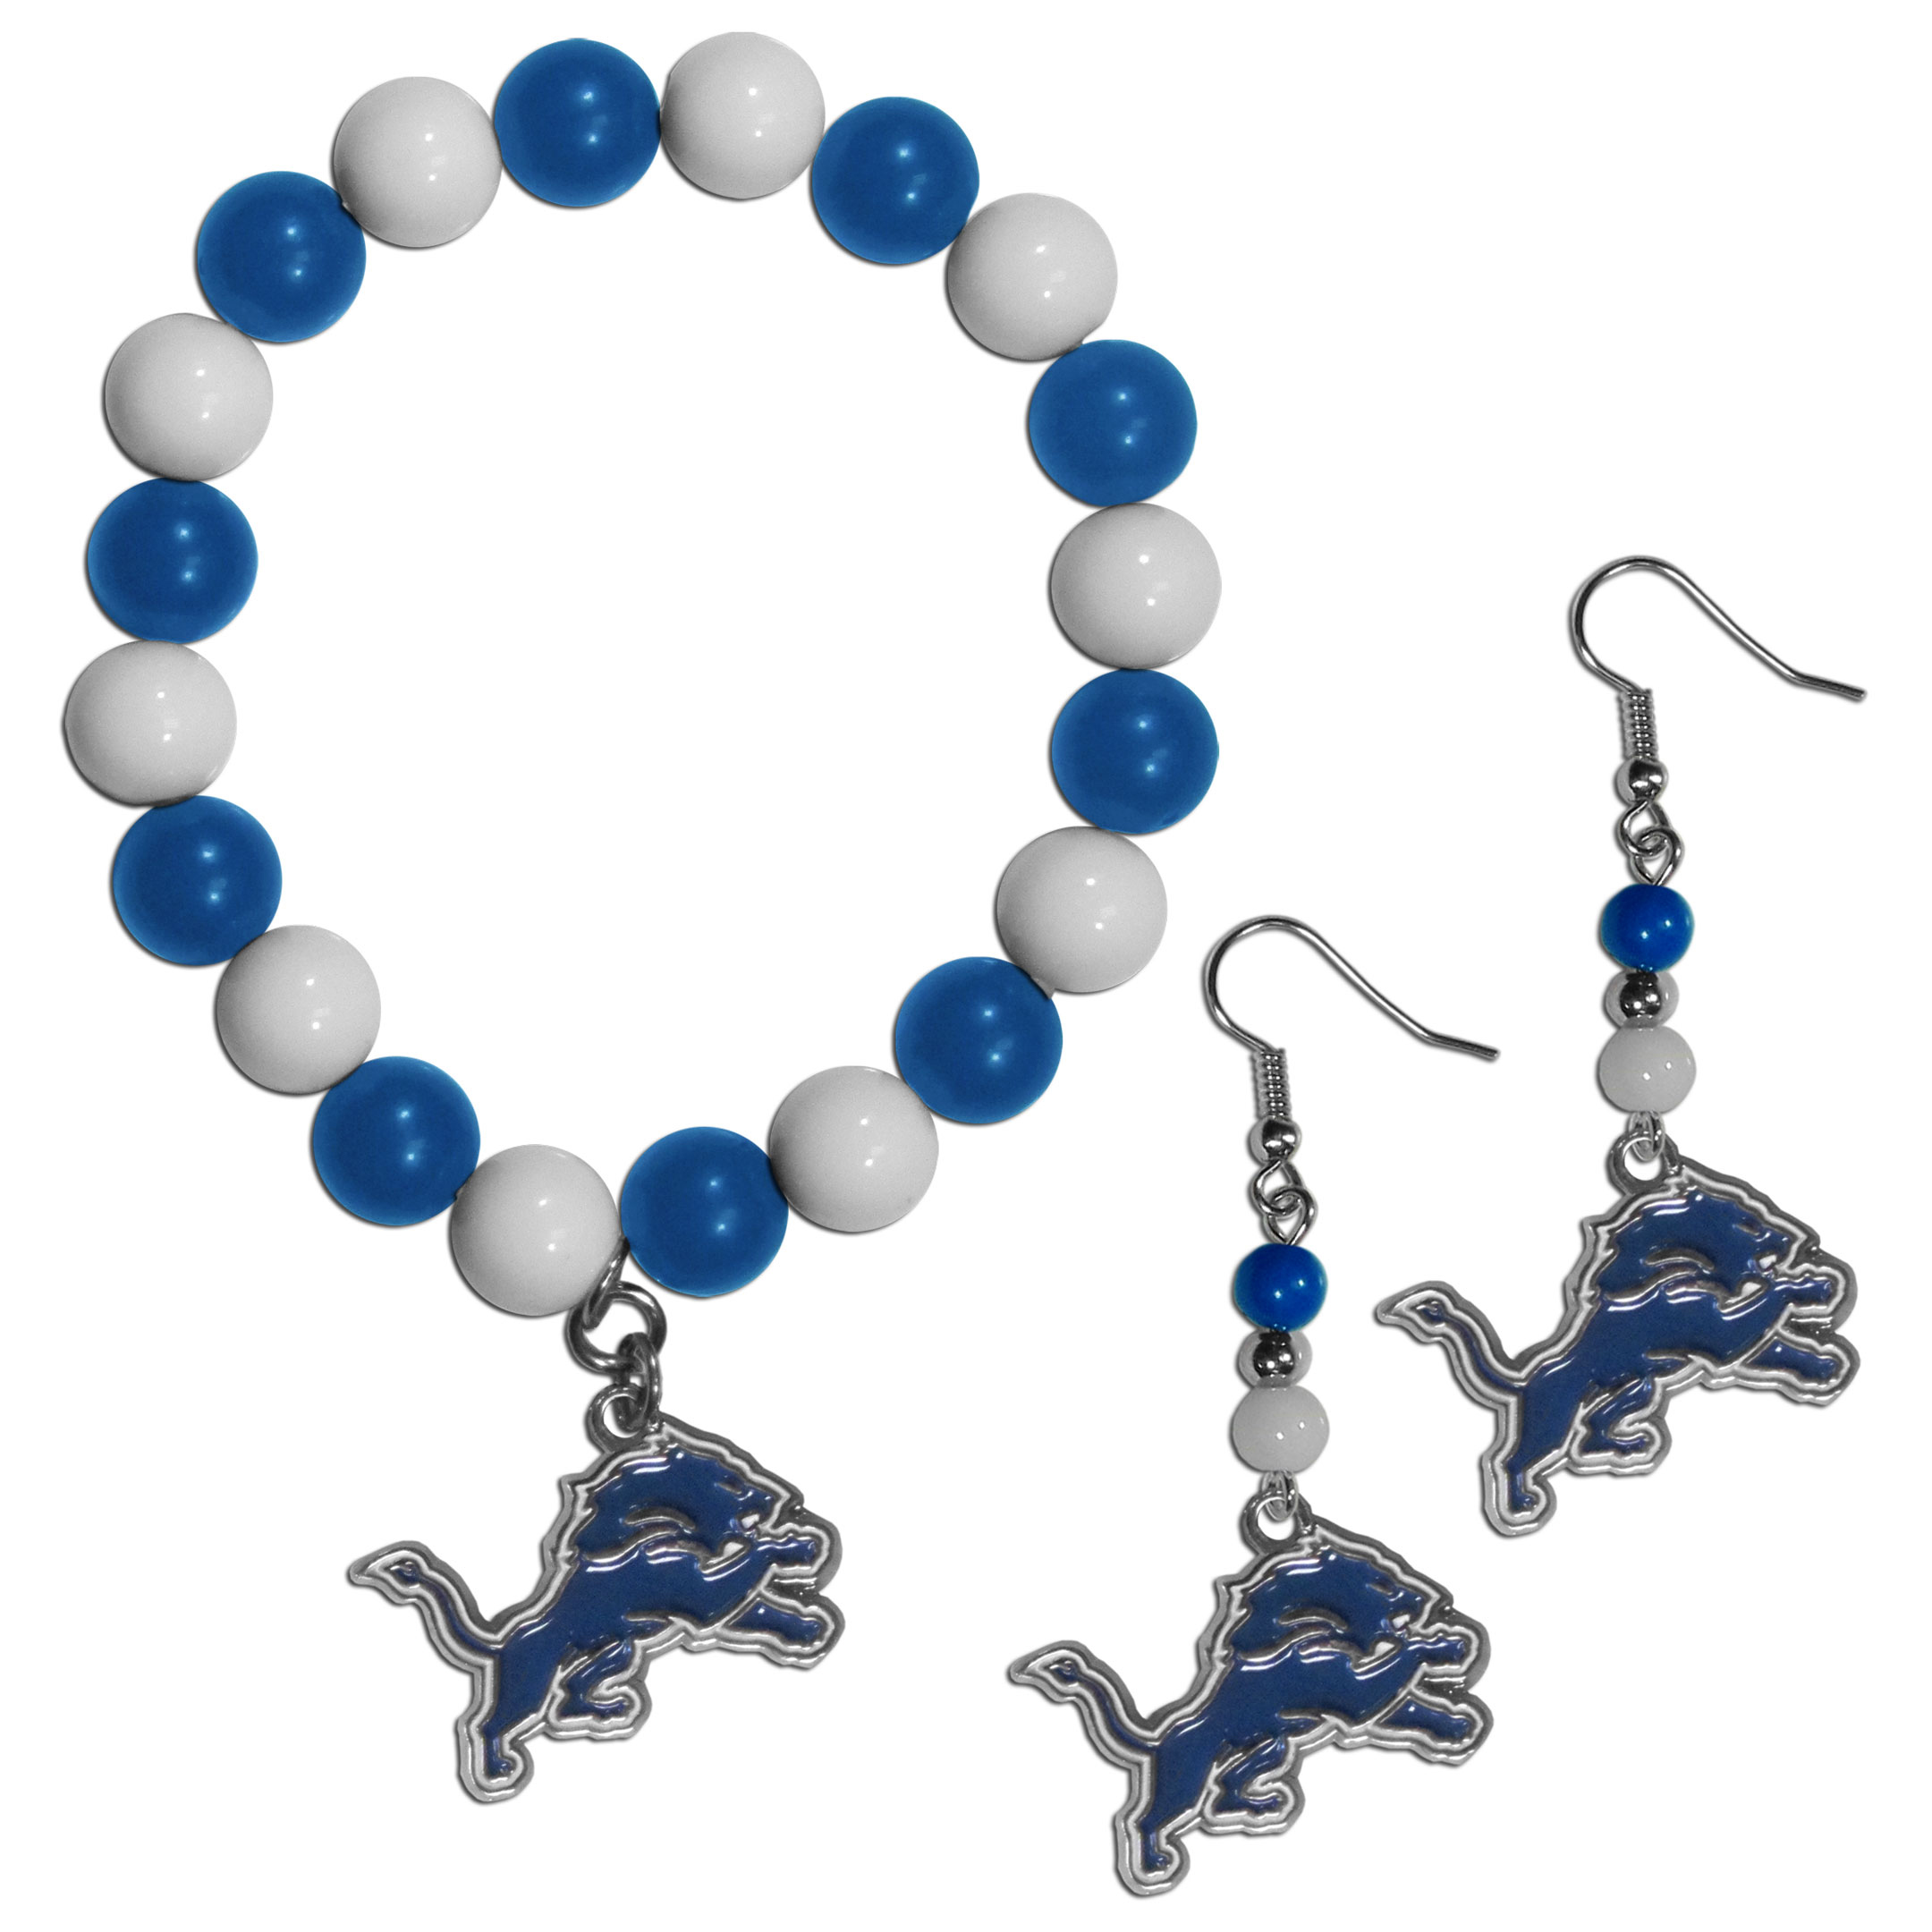 Detroit Lions Fan Bead Earrings and Bracelet Set - This fun and colorful Detroit Lions fan bead jewelry set is fun and casual with eye-catching beads in bright team colors. The fashionable dangle earrings feature a team colored beads that drop down to a carved and enameled charm. The stretch bracelet has larger matching beads that make a striking statement and have a matching team charm. These sassy yet sporty jewelry pieces make a perfect gift for any female fan. Spice up your game-day outfit with these fun colorful earrings and bracelet that are also cute enough for any day.